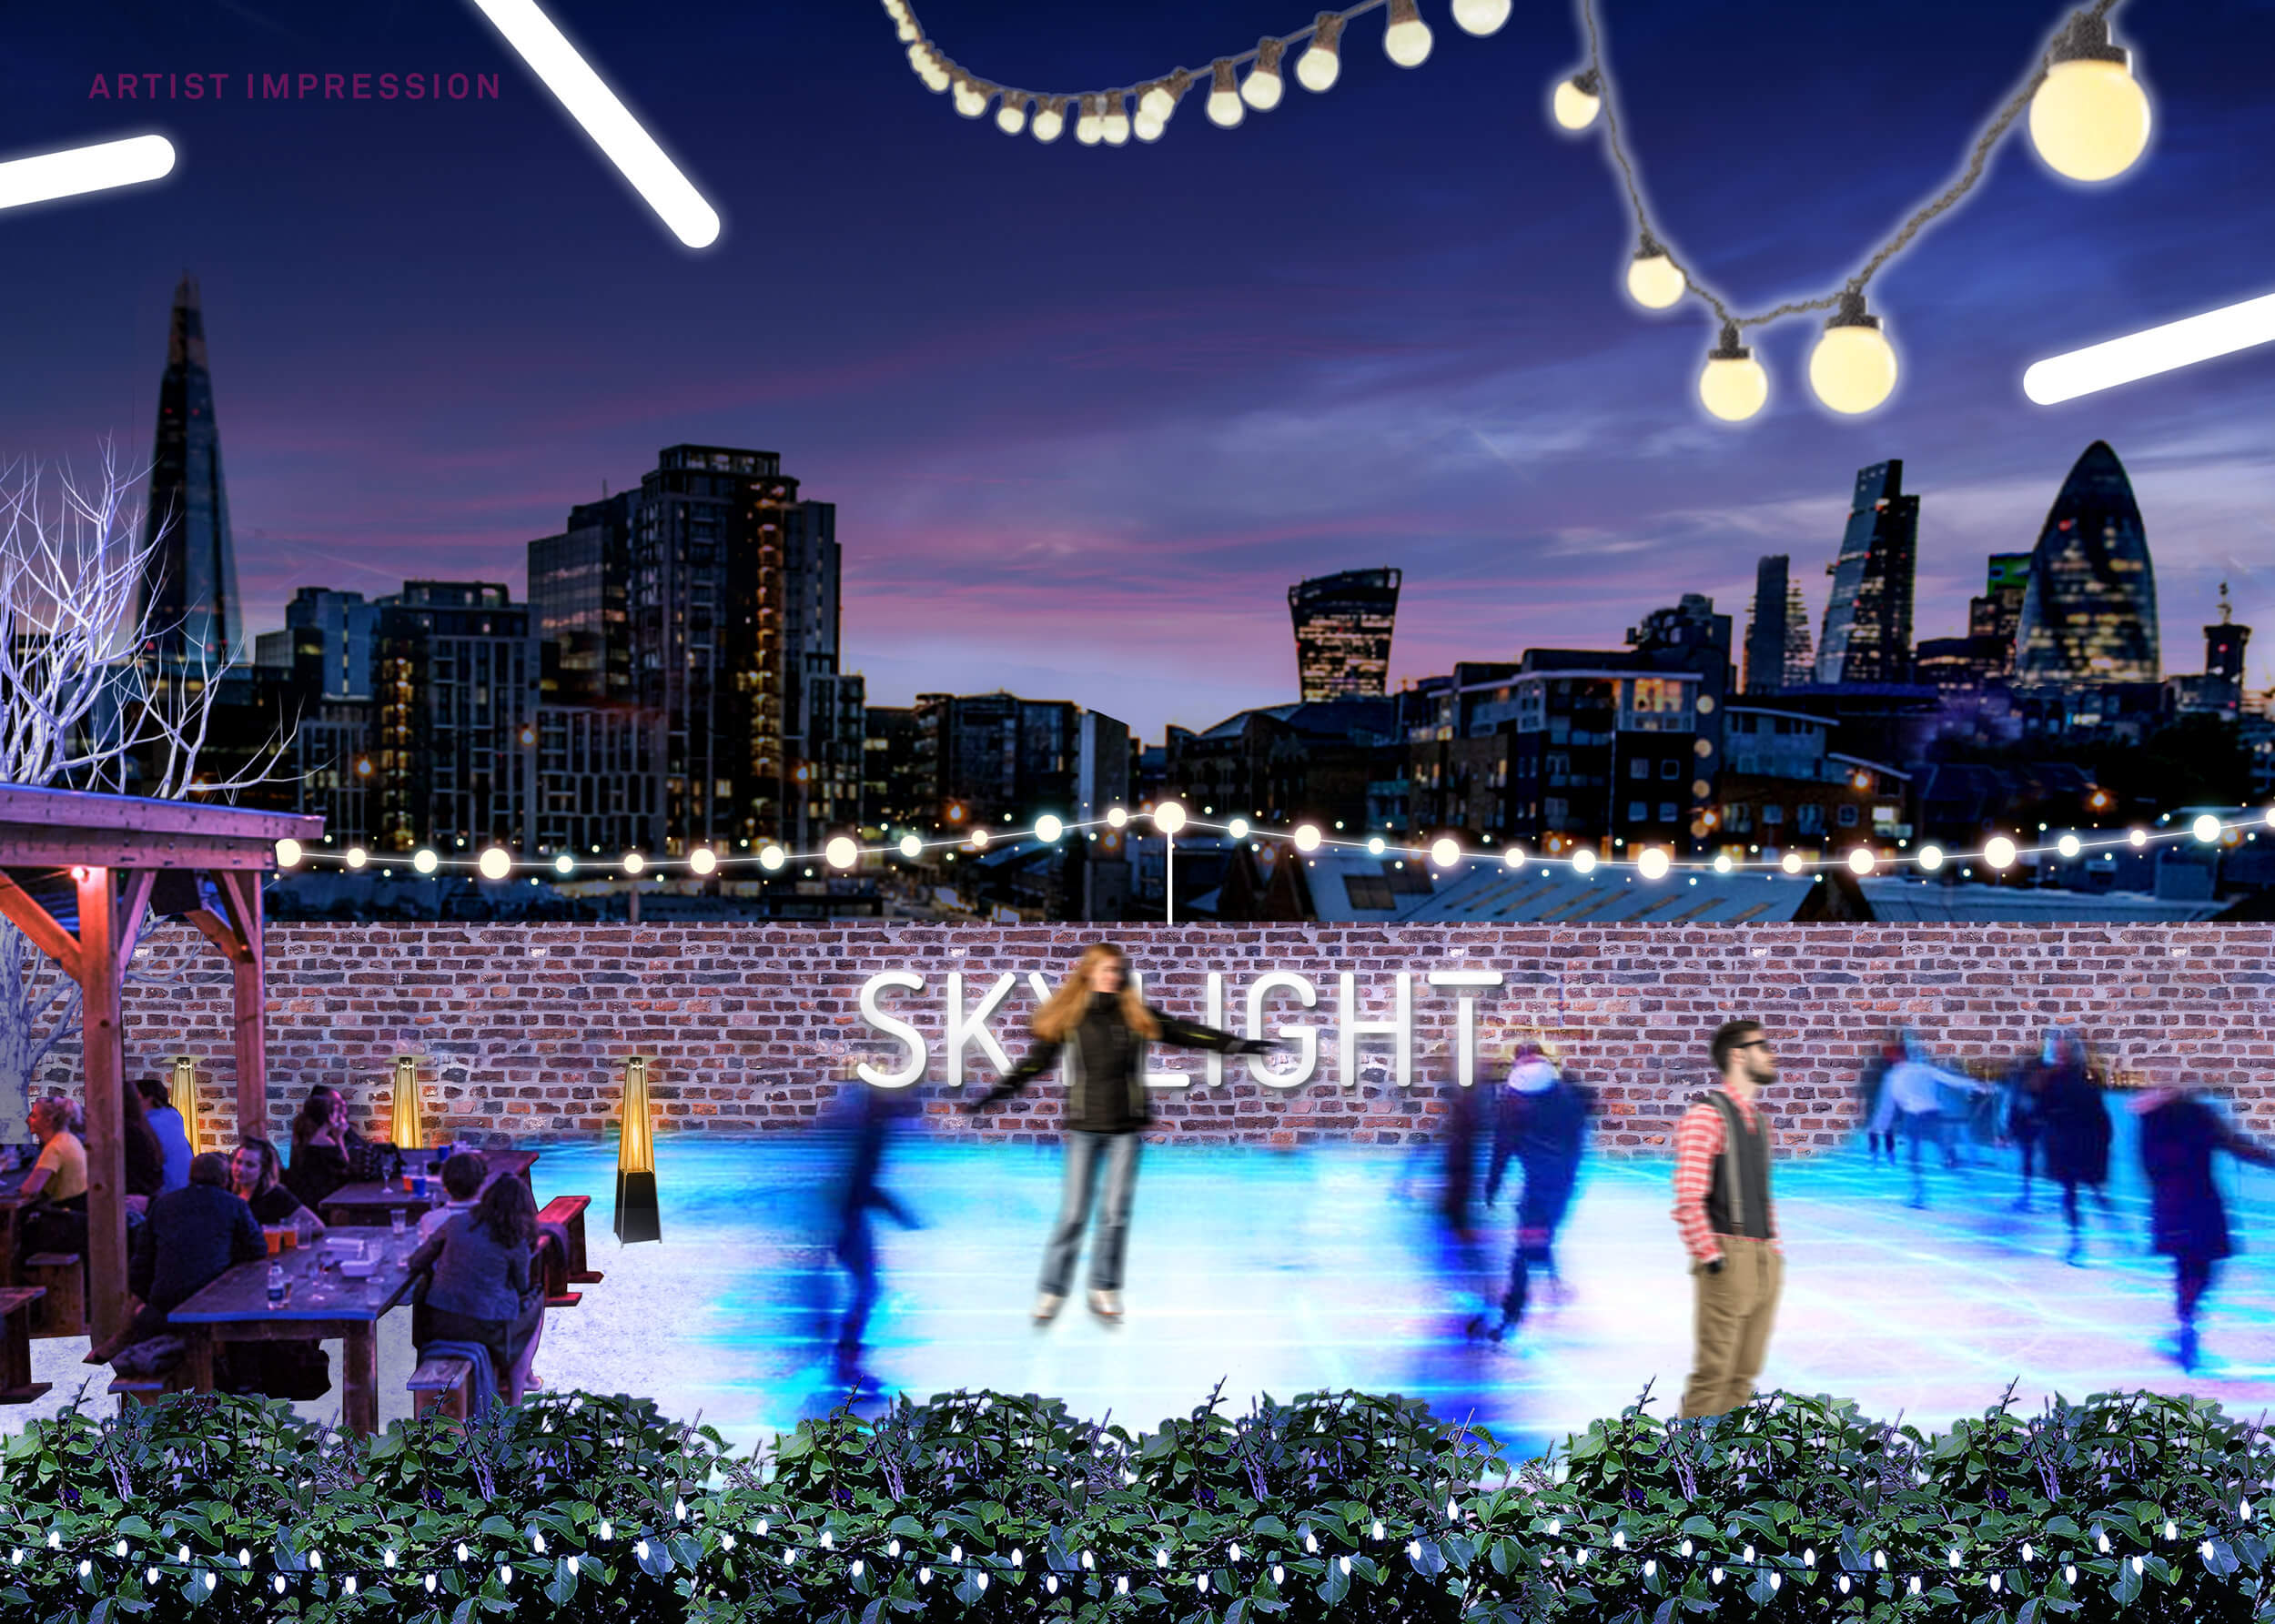 Skating at Skylight London